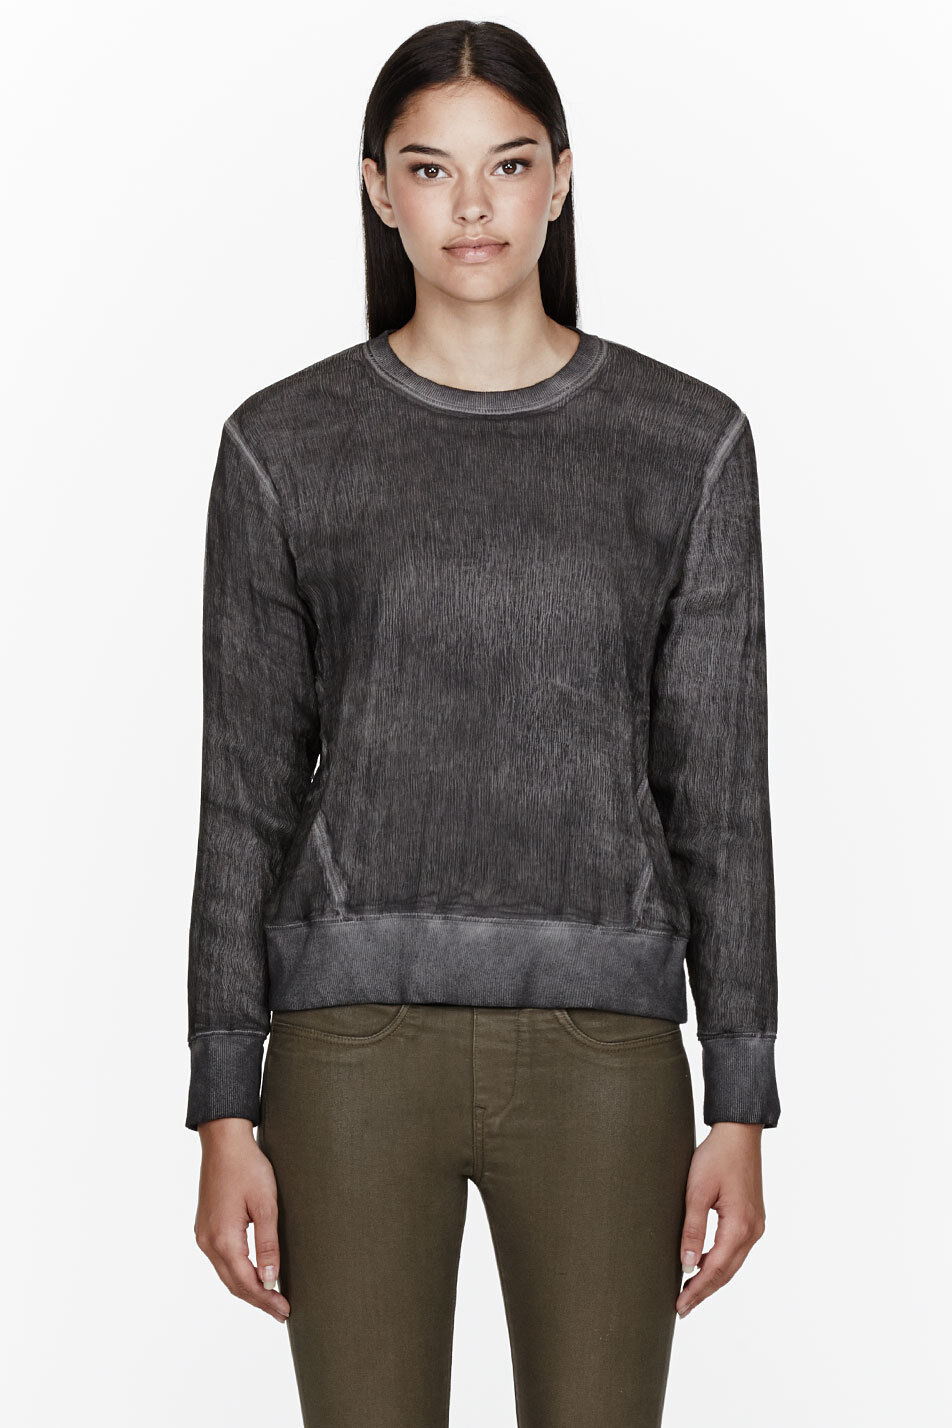 HELMUT HELMUT LANG CHARCOAL WASHED VOILE CRINKLED LAYErot SWEATER BLOUSE-S,10-UK